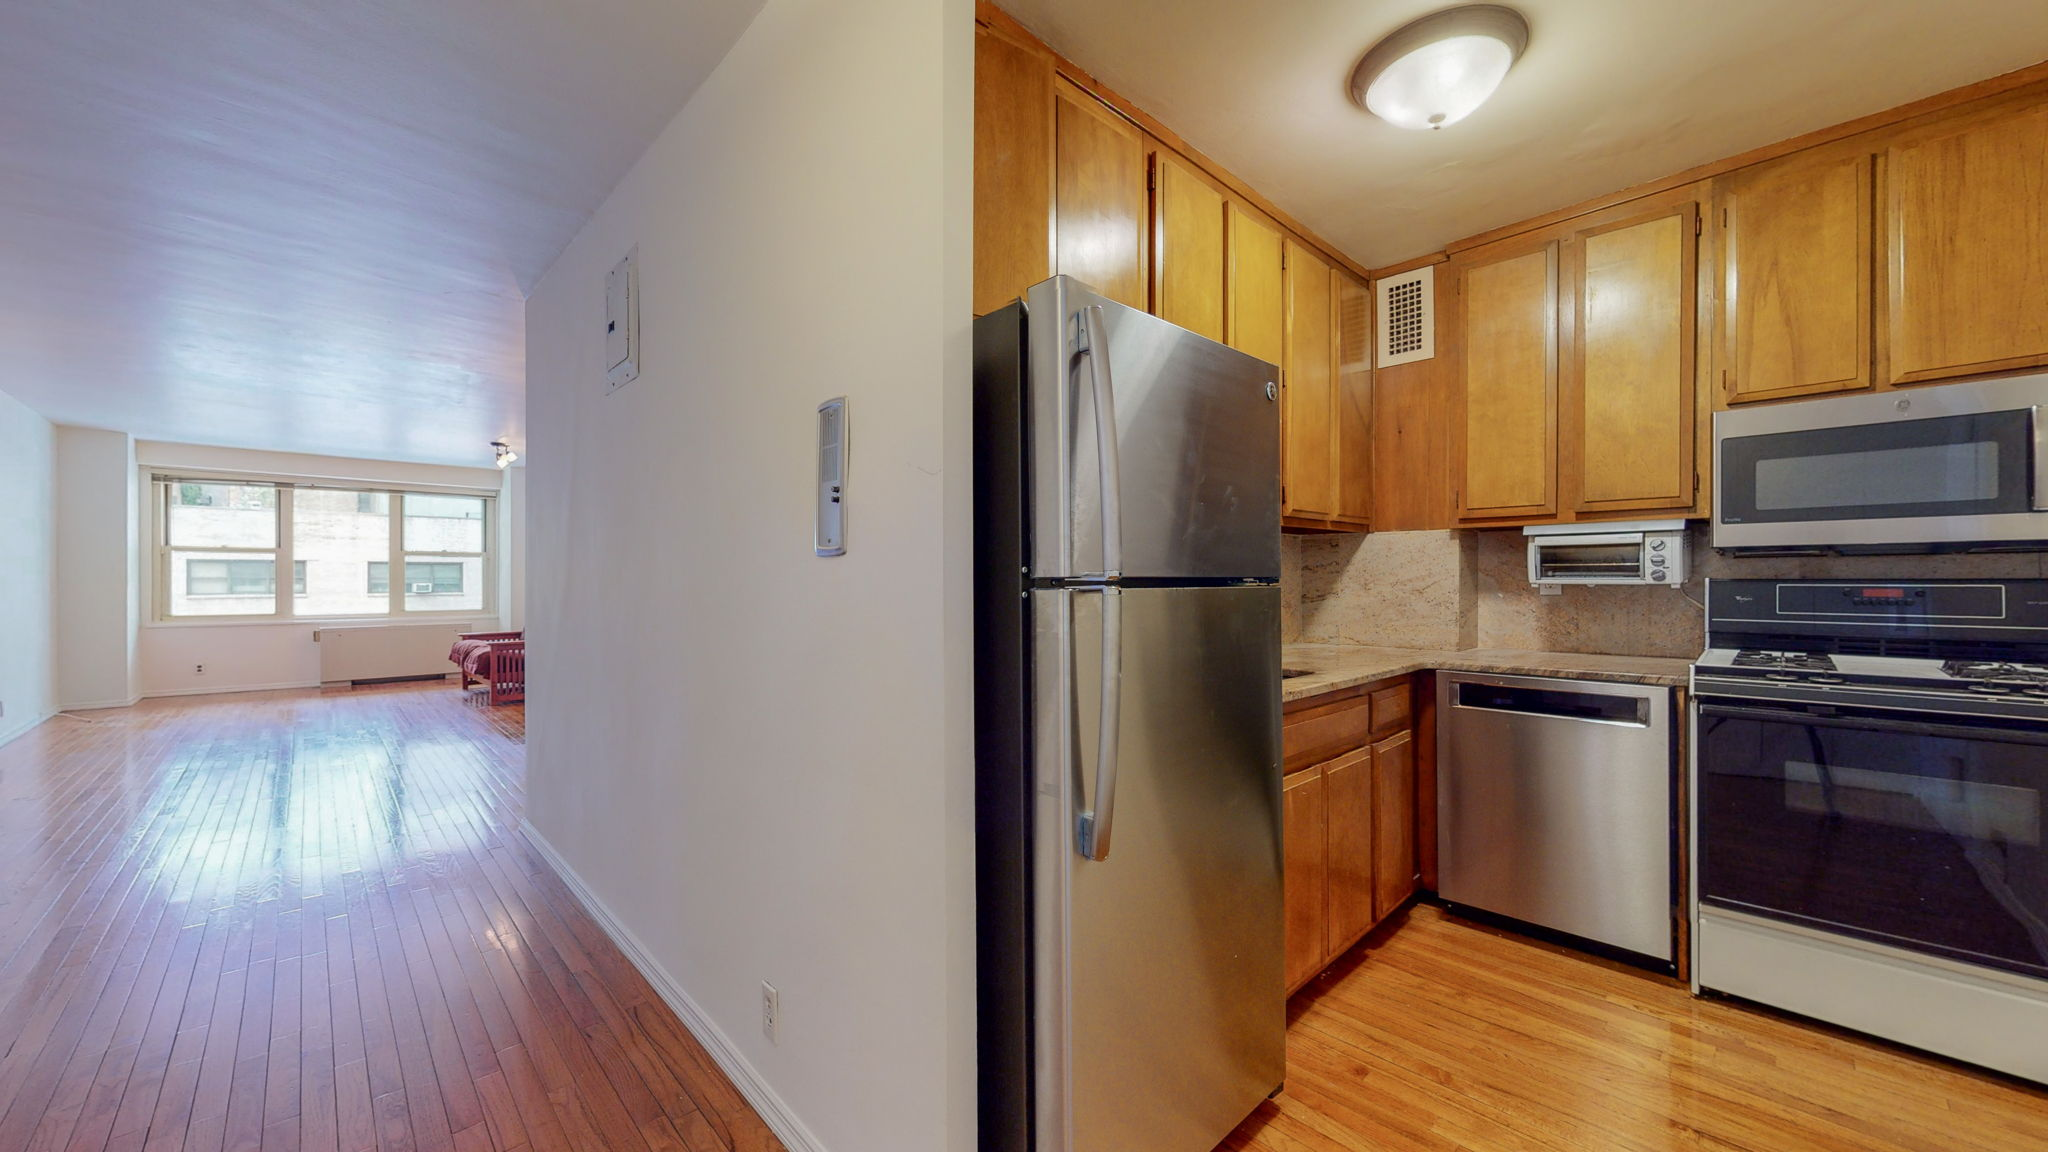 305 East 24th Street, New York, New York, New York, United States 10010, 1 Bedroom Bedrooms, ,1 BathroomBathrooms,Co-op,FOR SALE,New York Towers,East 24th Street,1141